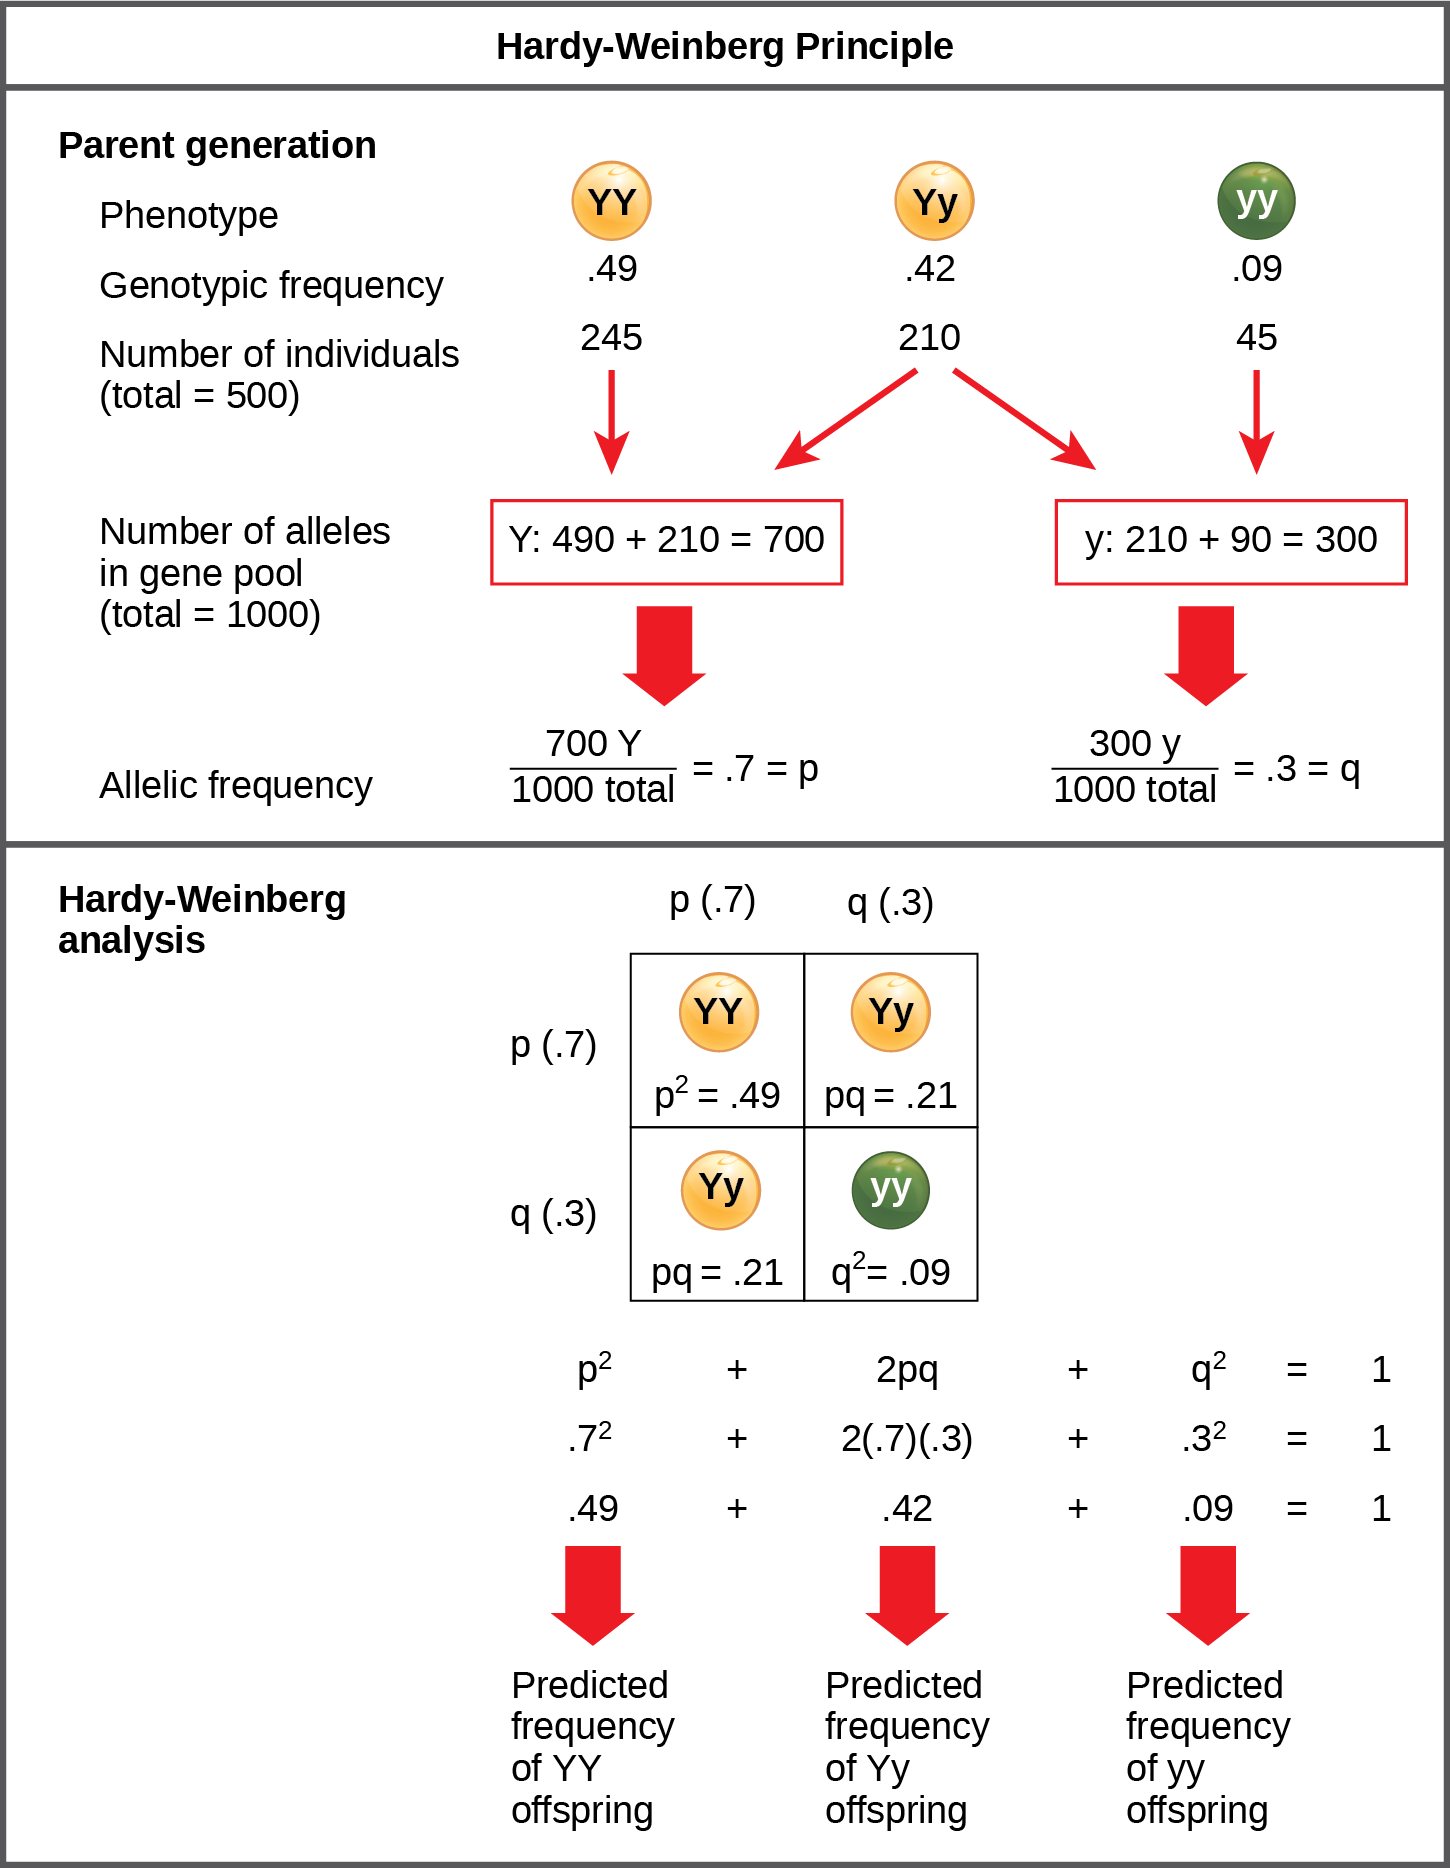 The Hardy-Weinberg principle is used to predict the genotypic distribution of offspring in a given population. In the example given, pea plants have two different alleles for pea color. The dominant capital Y allele results in yellow pea color, and the recessive small y allele results in green pea color. The distribution of individuals in a population of 500 is given. Of the 500 individuals, 245 are homozygous dominant (capital Y capital Y) and produce yellow peas. 210 are heterozygous (capital Y small y) and also produce yellow peas. 45 are homozygous recessive (small y small y) and produce green peas. The frequencies of homozygous dominant, heterozygous, and homozygous recessive individuals are 0.49, 0.42, and 0.09, respectively. Each of the 500 individuals provides two alleles to the gene pool, or 1000 total. The 245 homozygous dominant individuals provide two capital Y alleles to the gene pool, or 490 total. The 210 heterozygous individuals provide 210 capital Y and 210 small y alleles to the gene pool. The 45 homozygous recessive individuals provide two small y alleles to the gene pool, or 90 total. The number of capital Y alleles is 490 from homozygous dominant individuals plus 210 from homozygous recessive individuals, or 700 total. The number of small y alleles is 210 from heterozygous individuals plus 90 from homozygous recessive individuals, or 300 total. The allelic frequency is calculated by dividing the number of each allele by the total number of alleles in the gene pool. For the capital Y allele, the allelic frequency is 700 divided by 1000, or 0.7; this allelic frequency is called p. For the small y allele the allelic frequency is 300 divided by 1000, or 0.3; the allelic frequency is called q. Hardy-Weinberg analysis is used to determine the genotypic frequency in the offspring. The Hardy-Wienberg equation is p-squared plus 2pq plus q-squared equals 1. For the population given, the frequency is 0.7-squared plus 2 times .7 times .3 plus .3-squared equals one. The value for p-squared, 0.49, is the predicted frequency of homozygous dominant (capital Y capital Y) individuals. The value for 2pq, 0.42, is the predicted frequency of heterozygous (capital Y small y) individuals. The value for q-squared, .09, is the predicted frequency of homozygous recessive individuals. Note that the predicted frequency of genotypes in the offspring is the same as the frequency of genotypes in the parent population. If all the genotypic frequencies, .49 plus .42 plus .09, are added together, the result is one